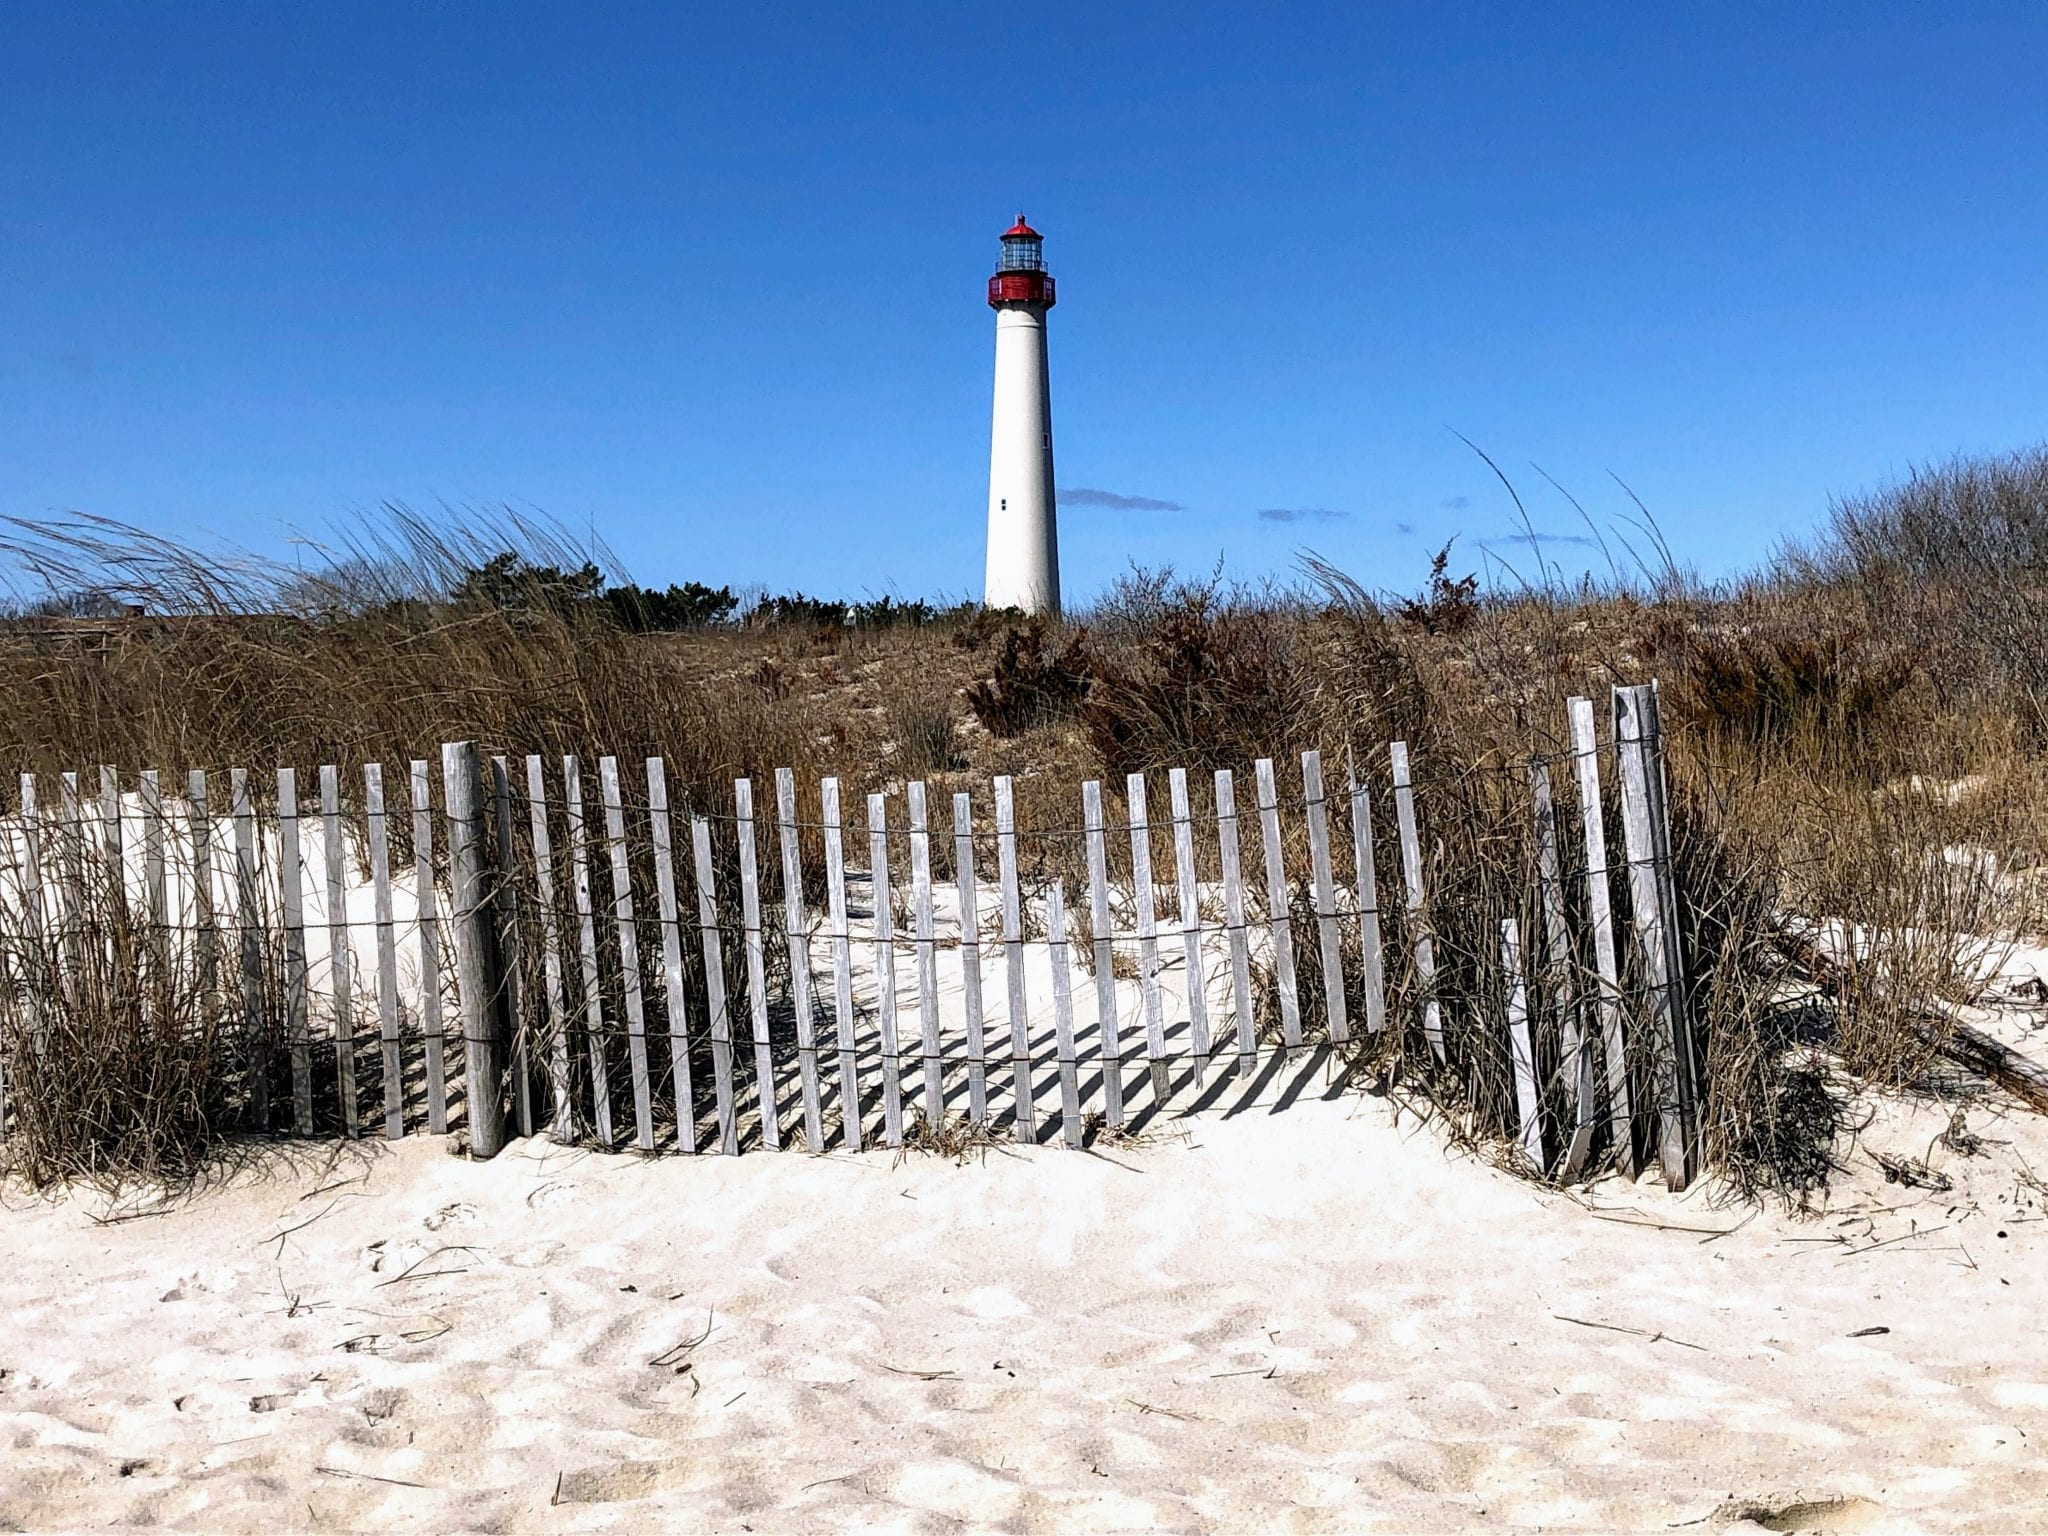 Cape May County: NJspots Scavenger Hunt